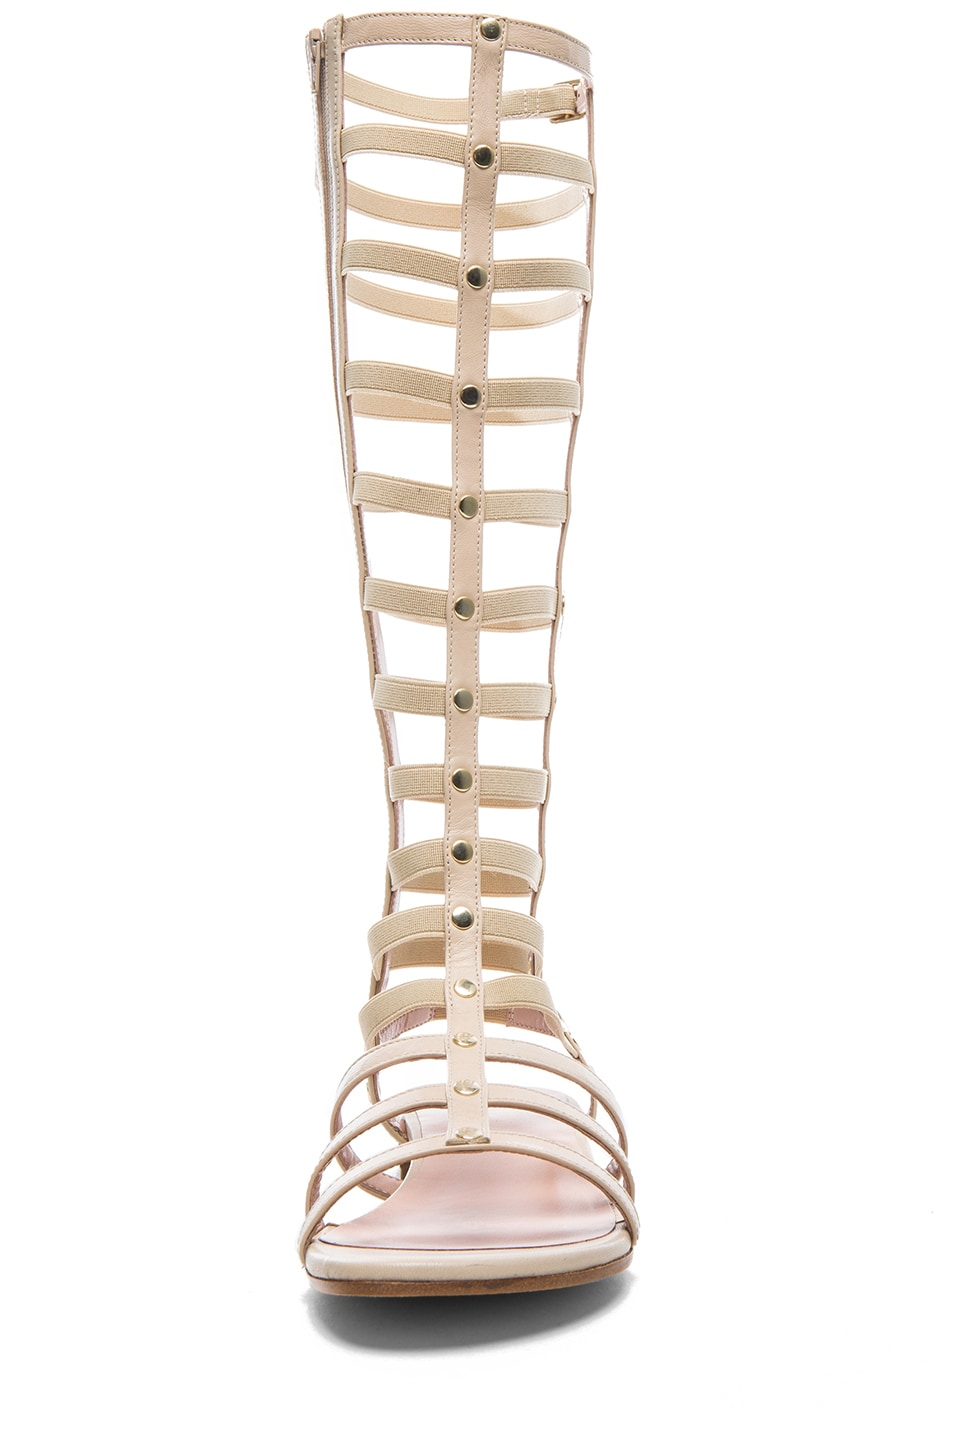 Image 4 of Stuart Weitzman Nappa Leather Gladiator Sandals in Pan